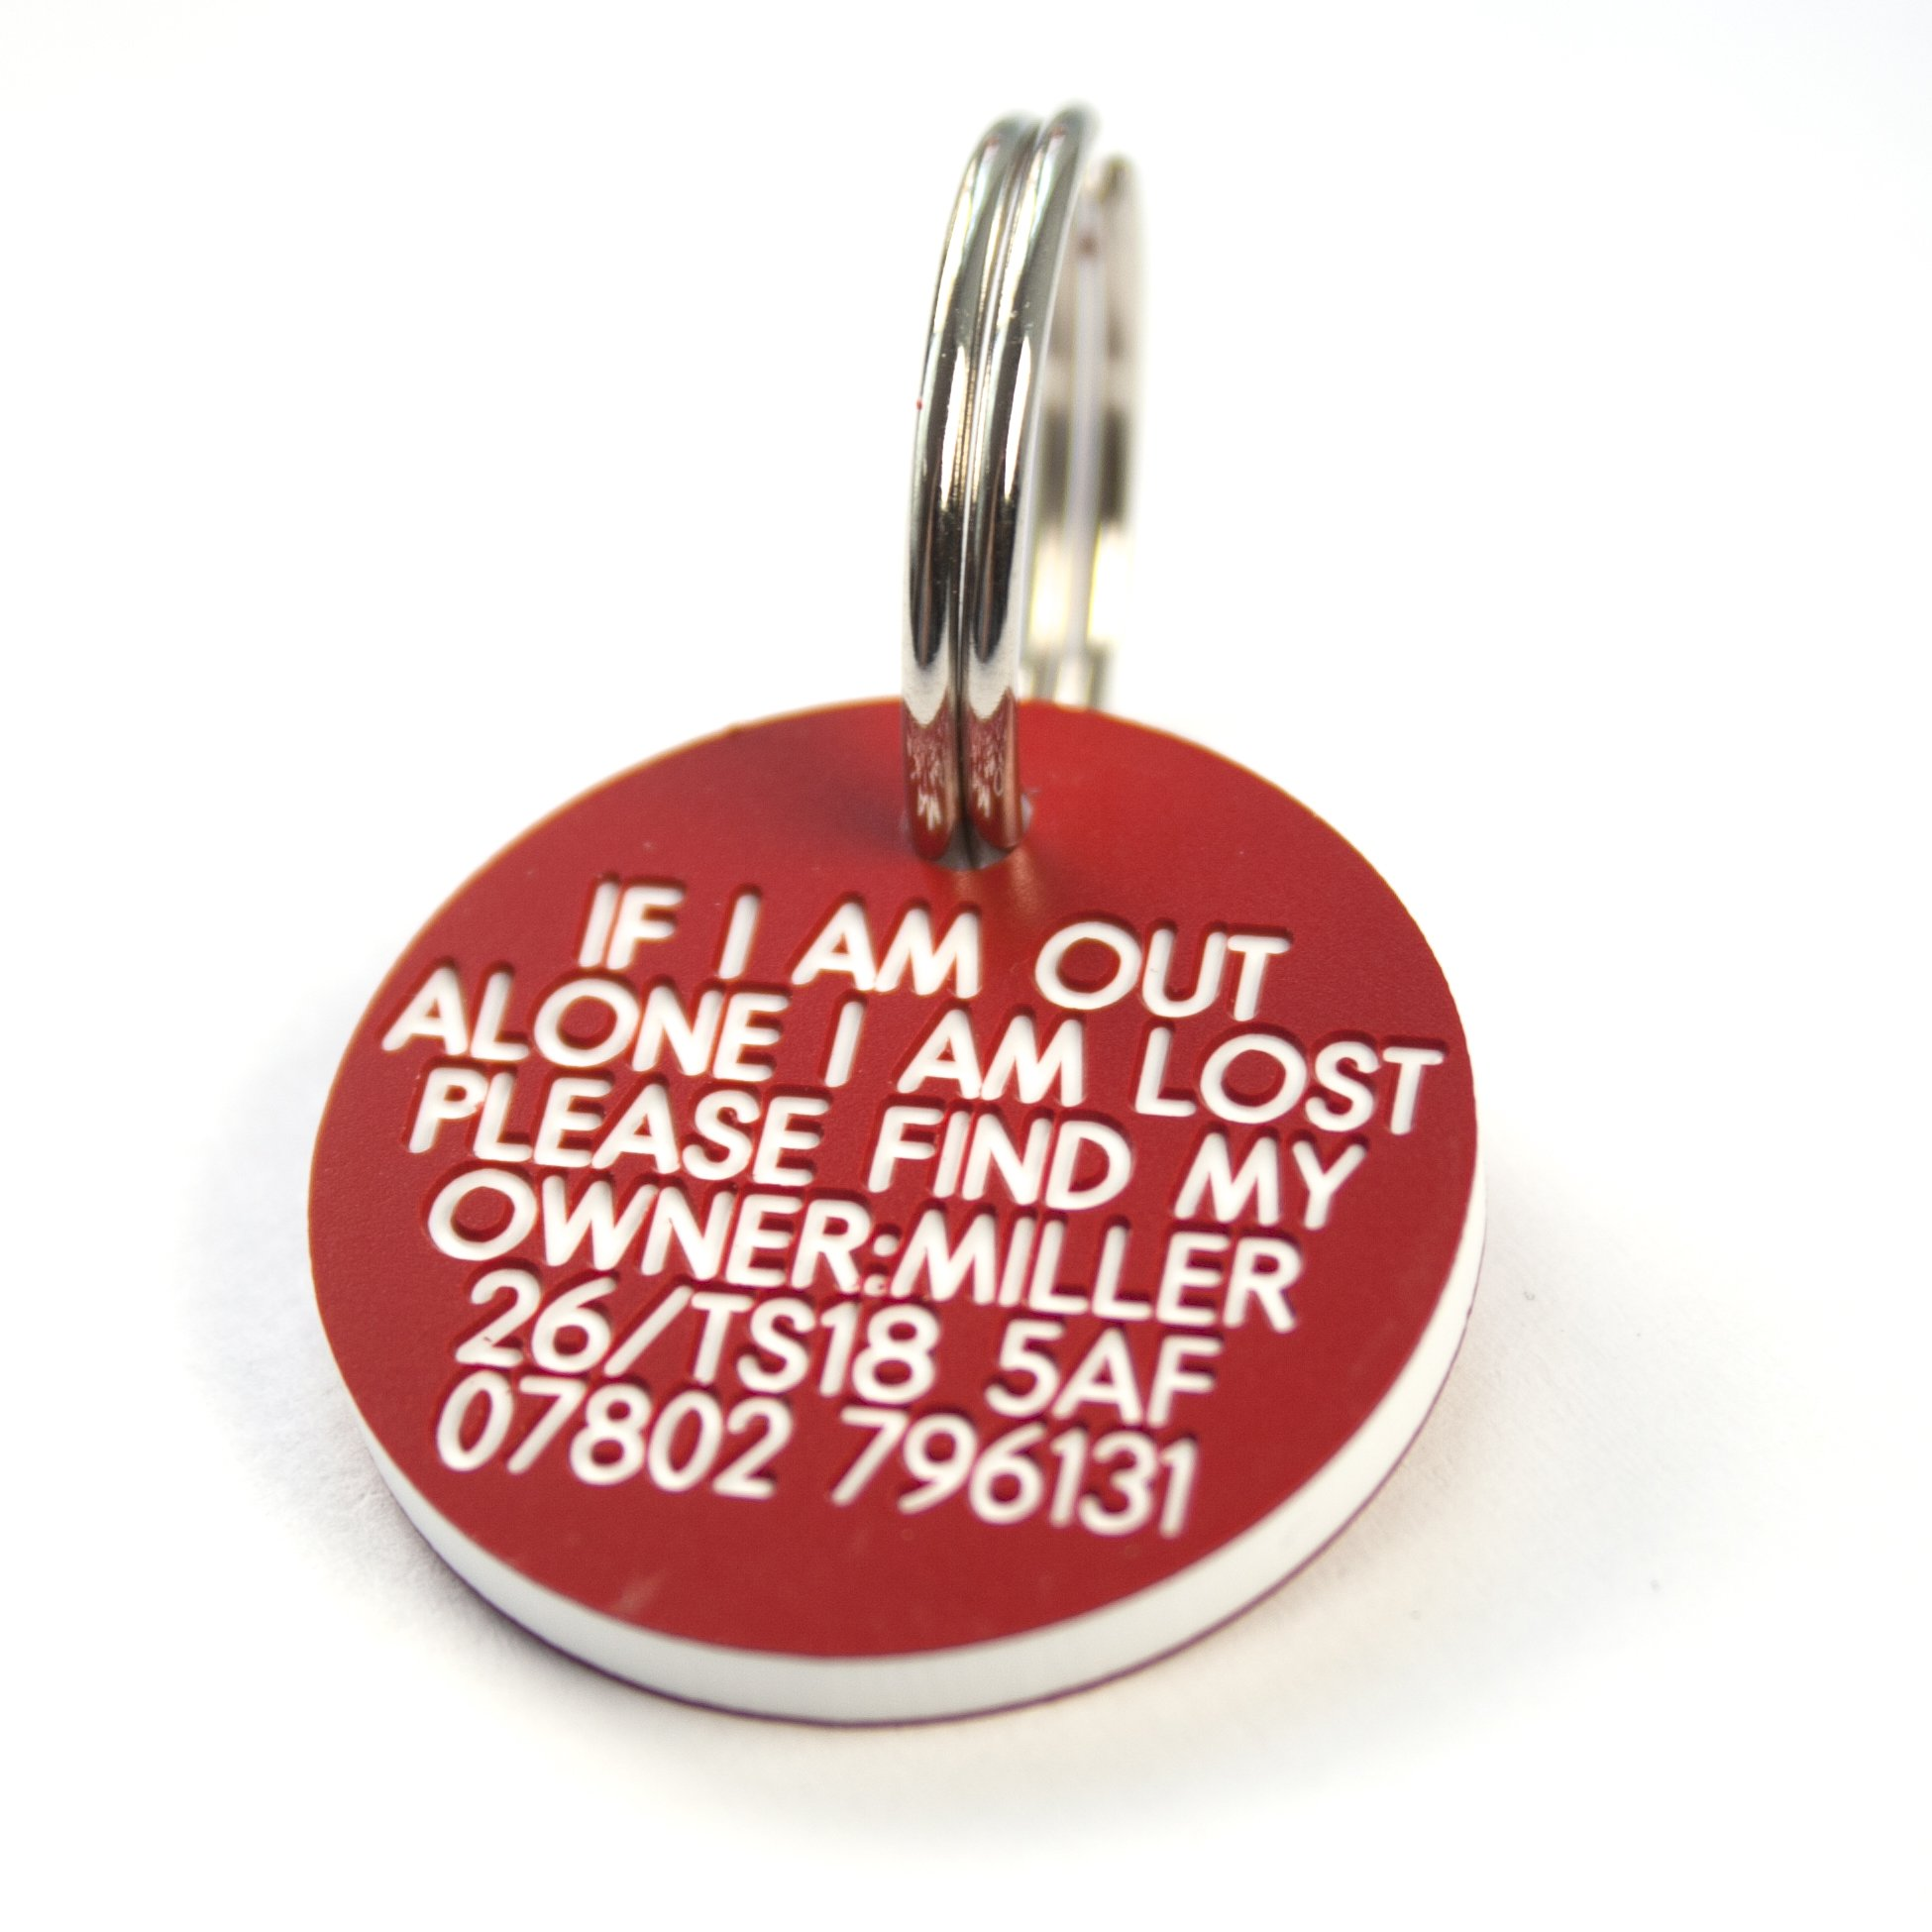 Engraving Studios Deeply engraved red plastic 27mm circular dog tag